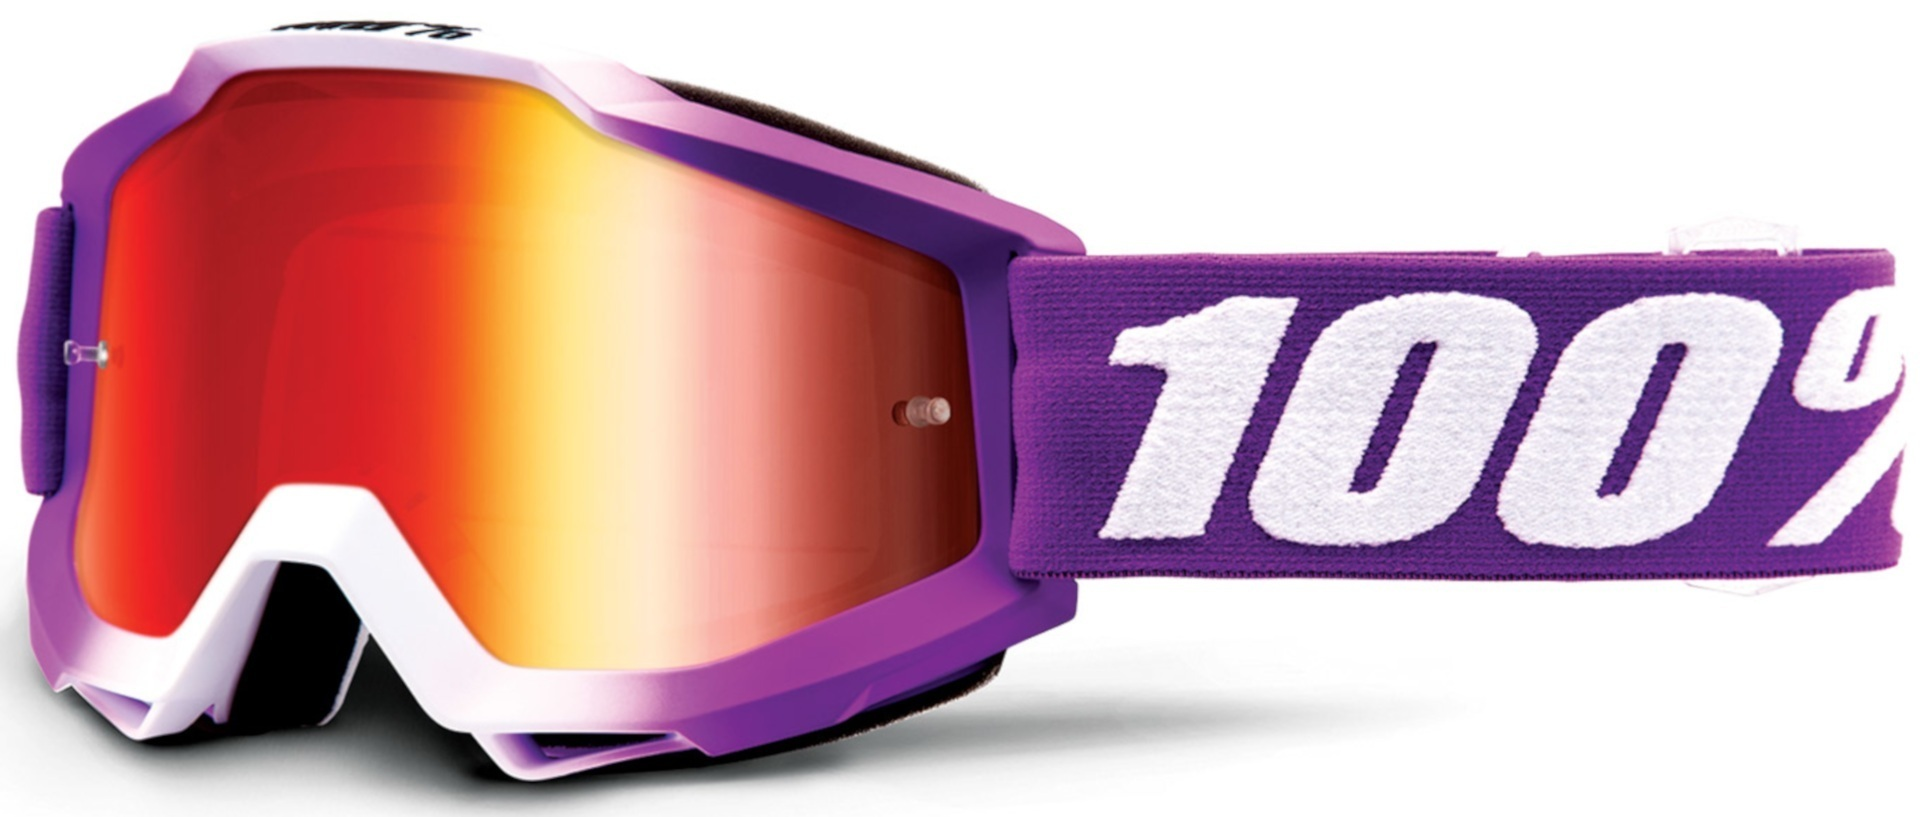 100% Accuri Extra Framboise Motocross Brille, weiss-lila, weiss-lila